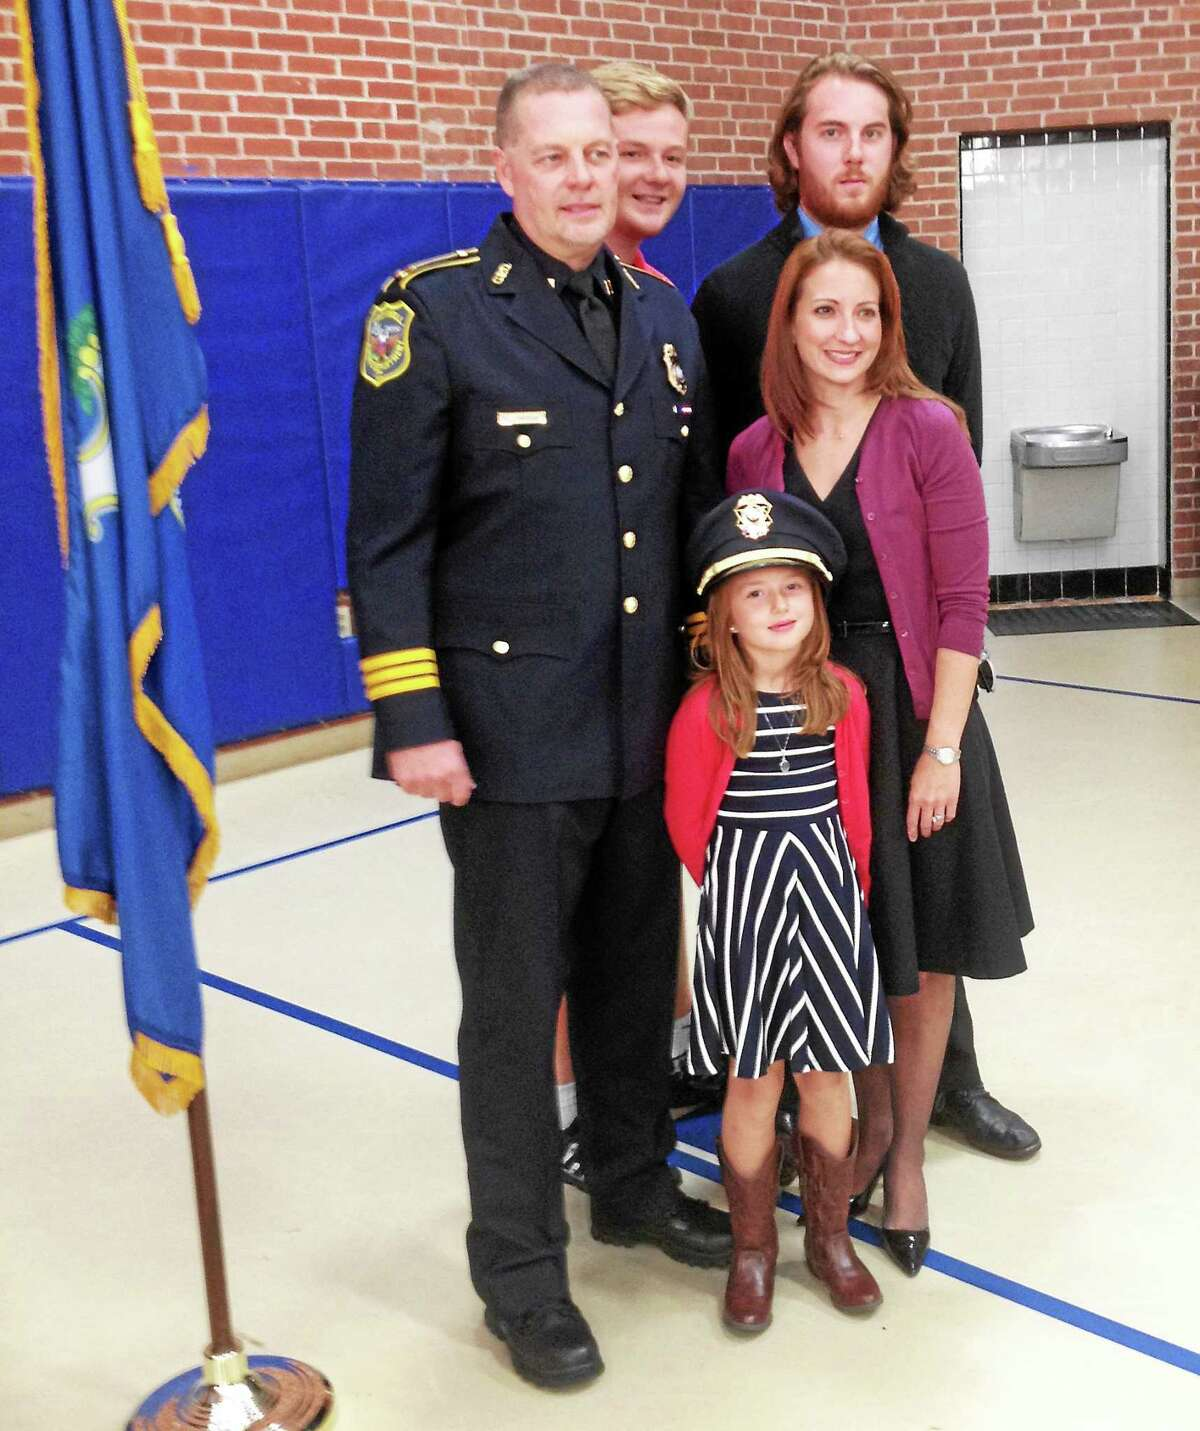 Det. Kevin VanderSloot was sworn in as a Cromwell police captain on Monday in a ceremony that drew nearly 100 people. Shown are, from left, VanderSloot, son Austin, daughter Grace, 6, wife Michell, and son Tyler.